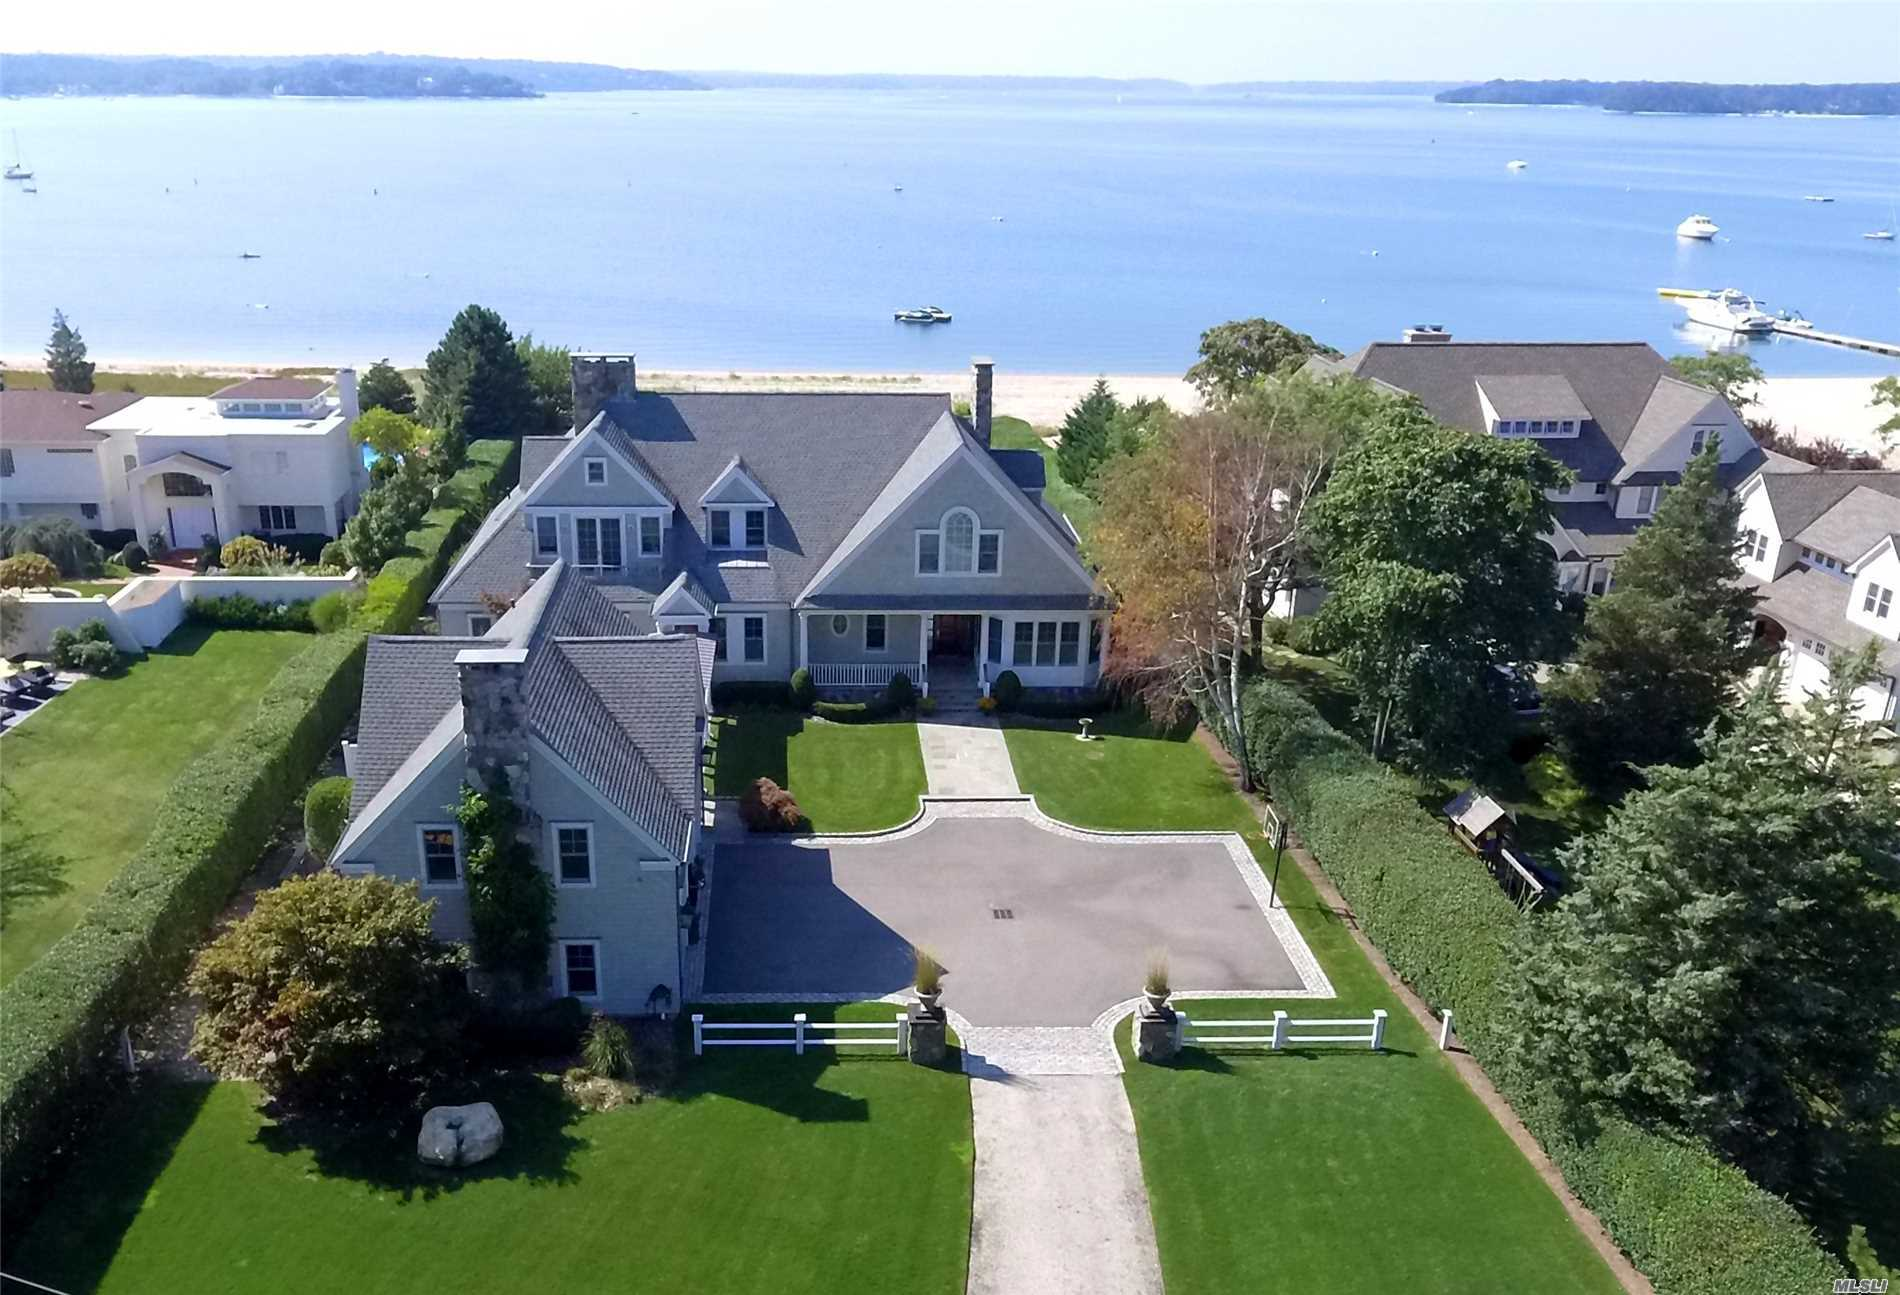 45 Asharoken Ave - Northport, New York